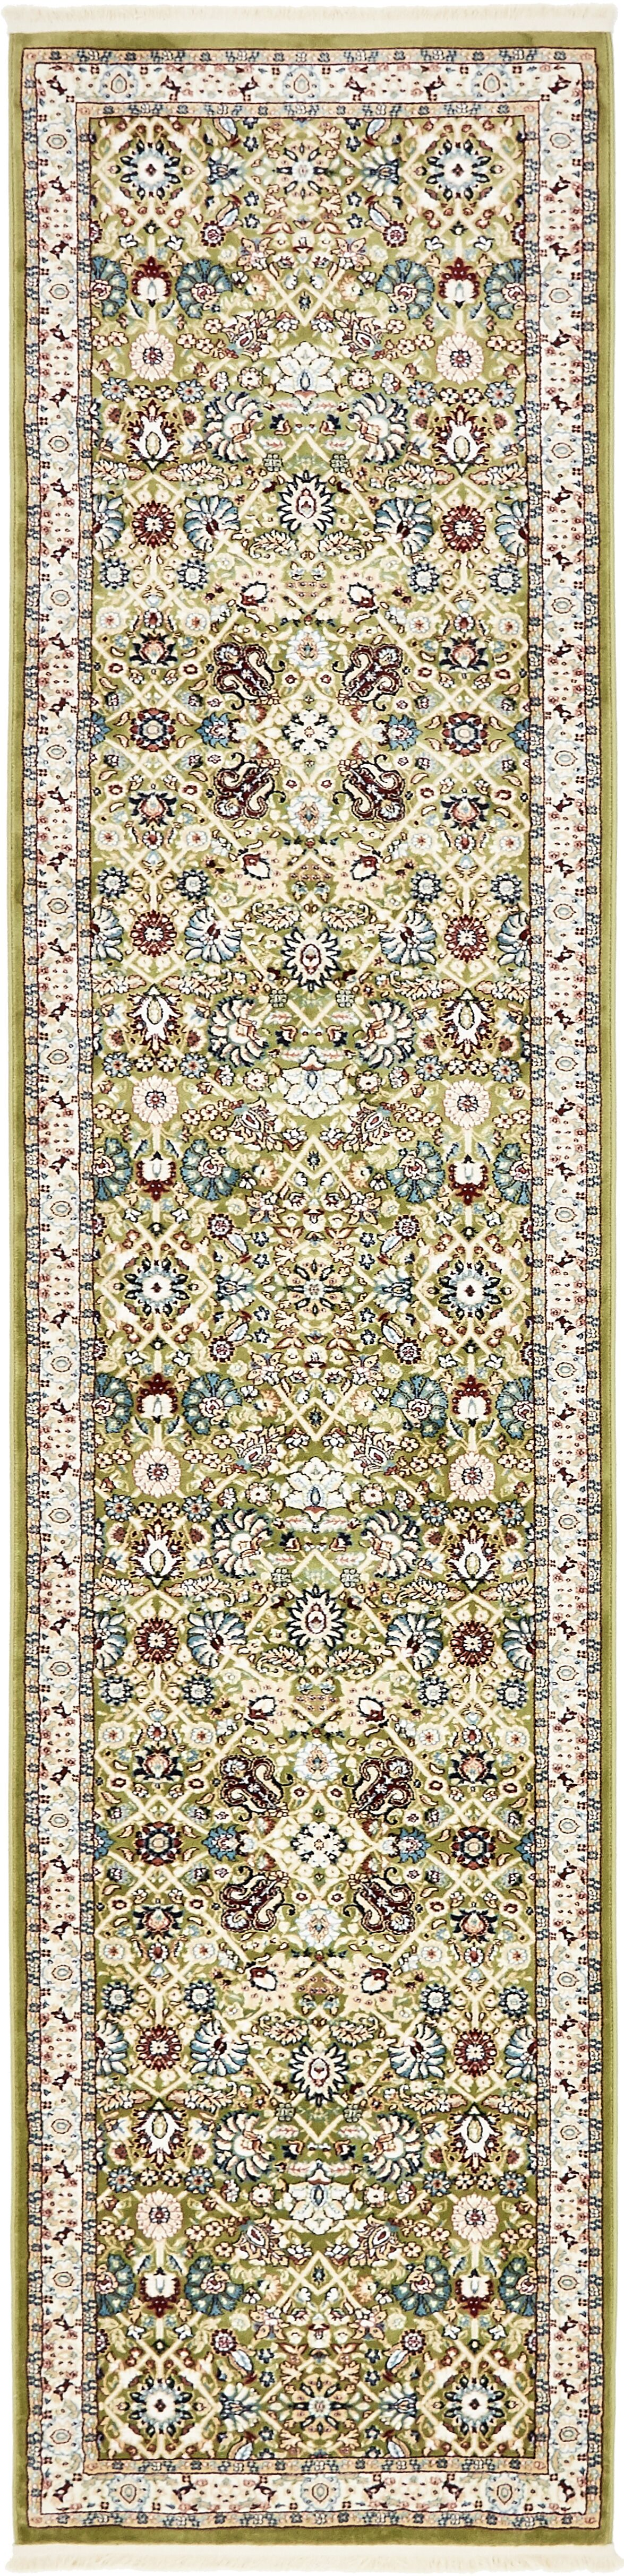 Quince Green/Tan Area Rug Rug Size: Runner 3' x 13'